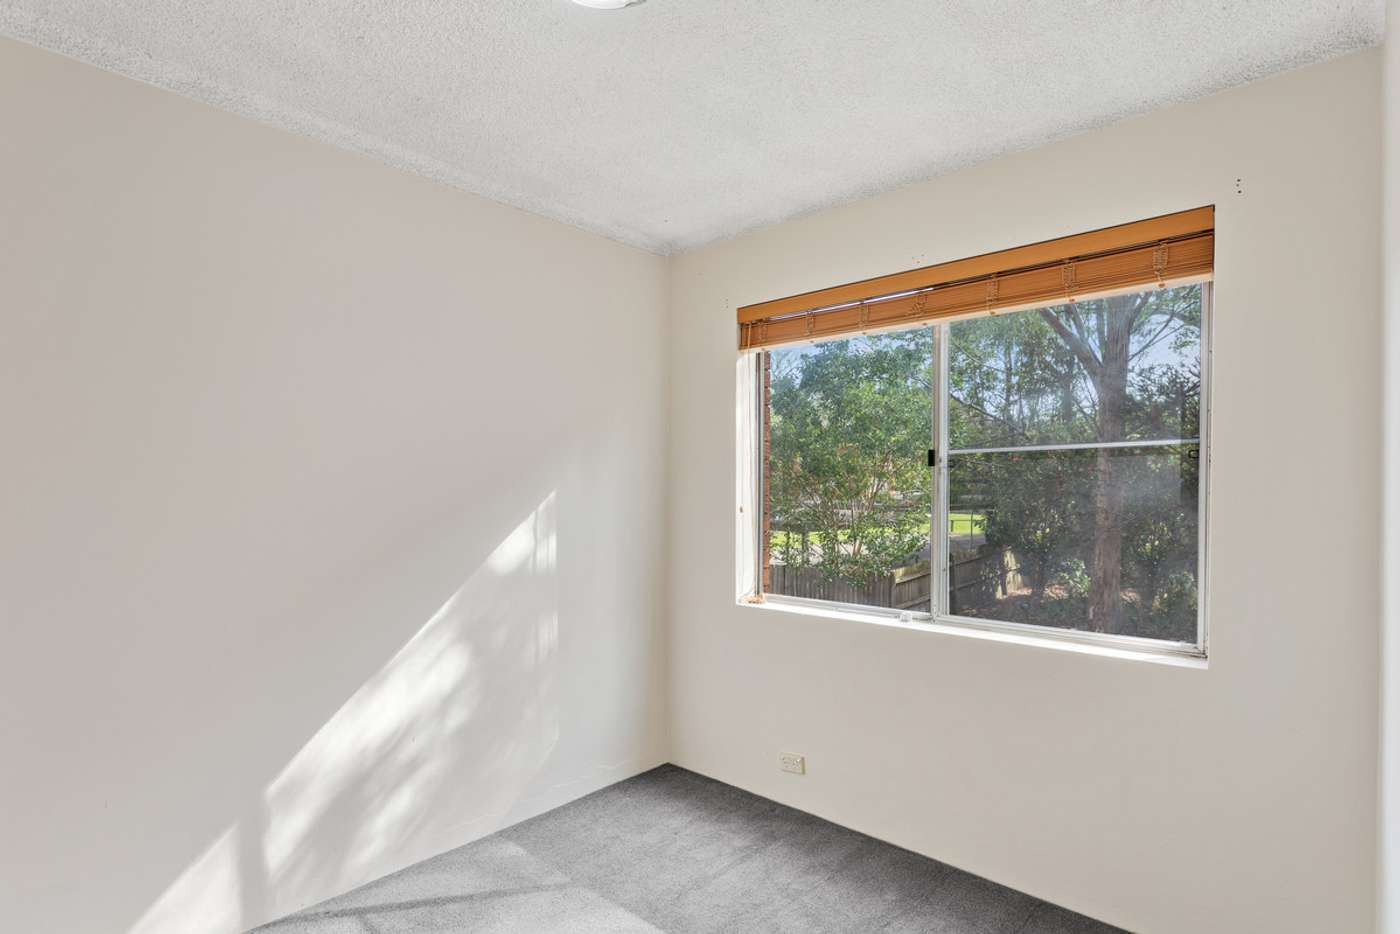 Sixth view of Homely apartment listing, 2/23 William Street, North Parramatta NSW 2151